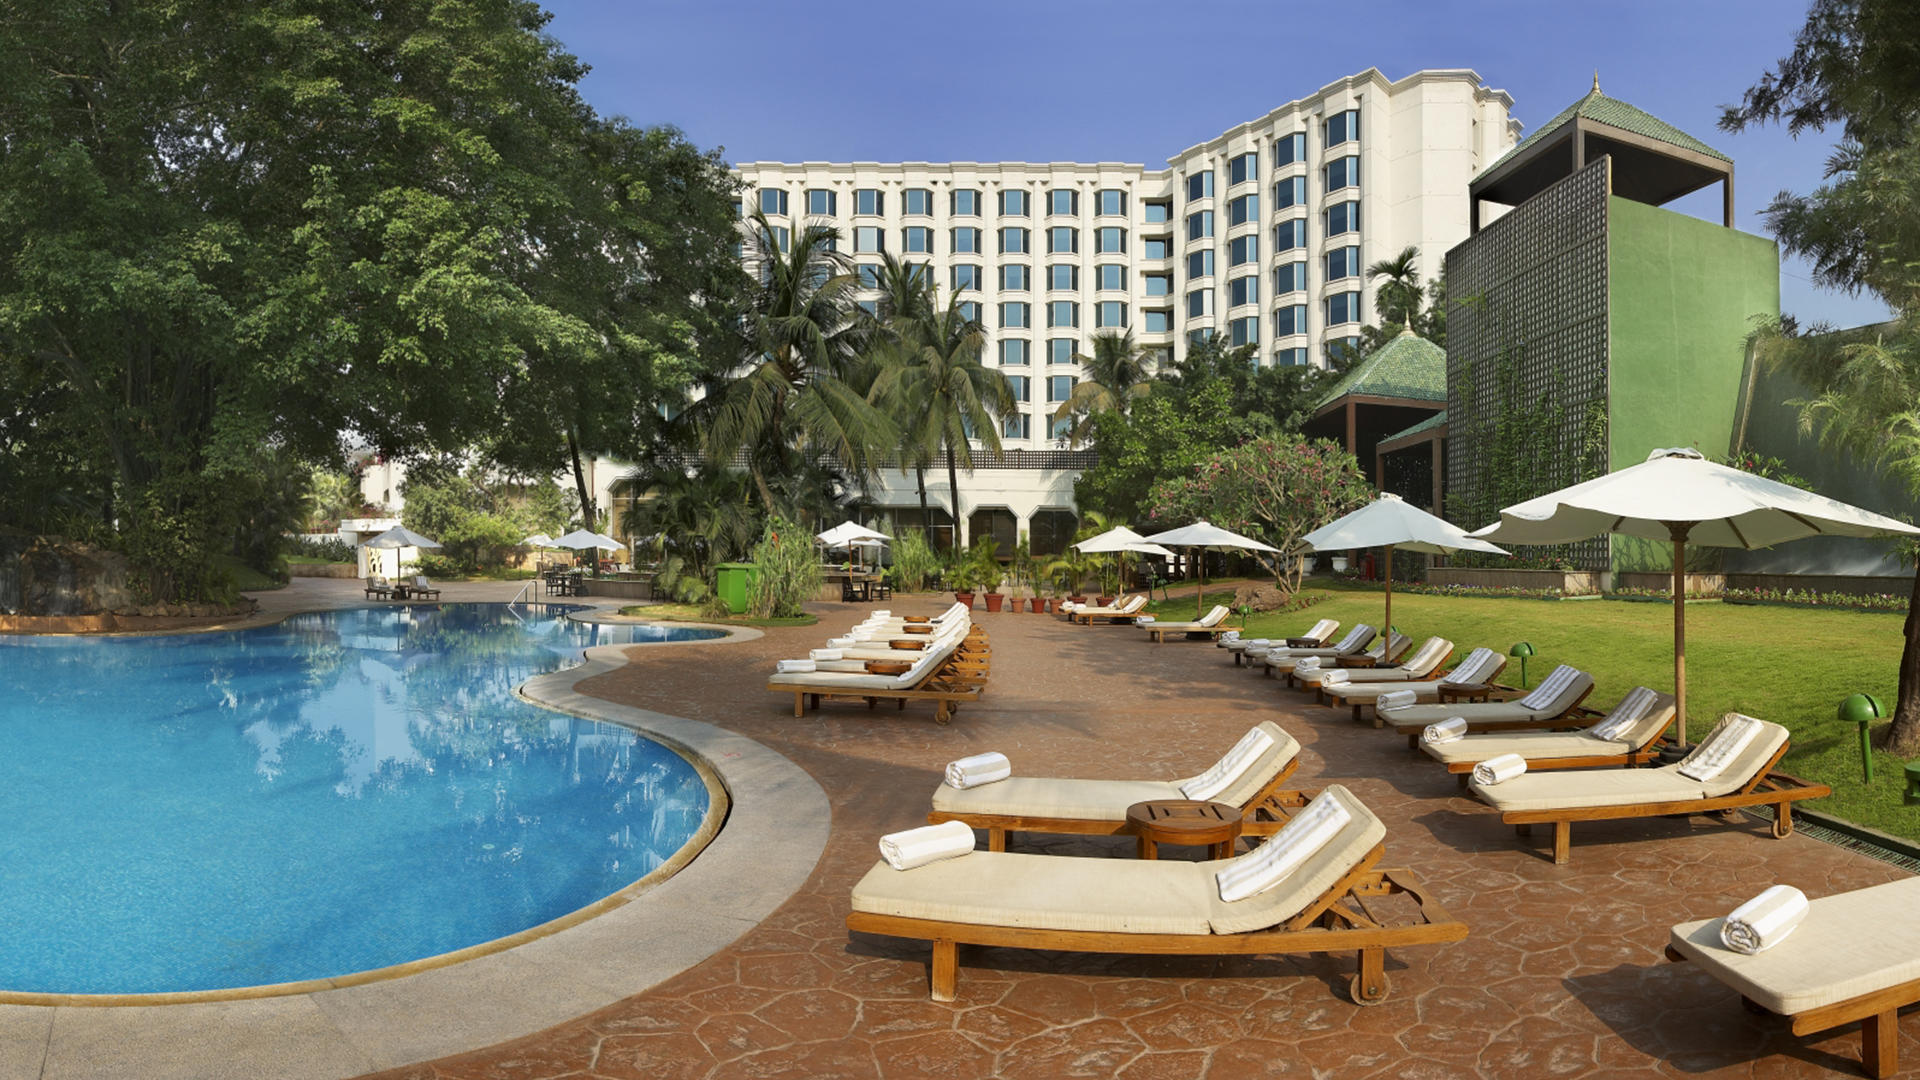 LeelaMumbai_Pool02